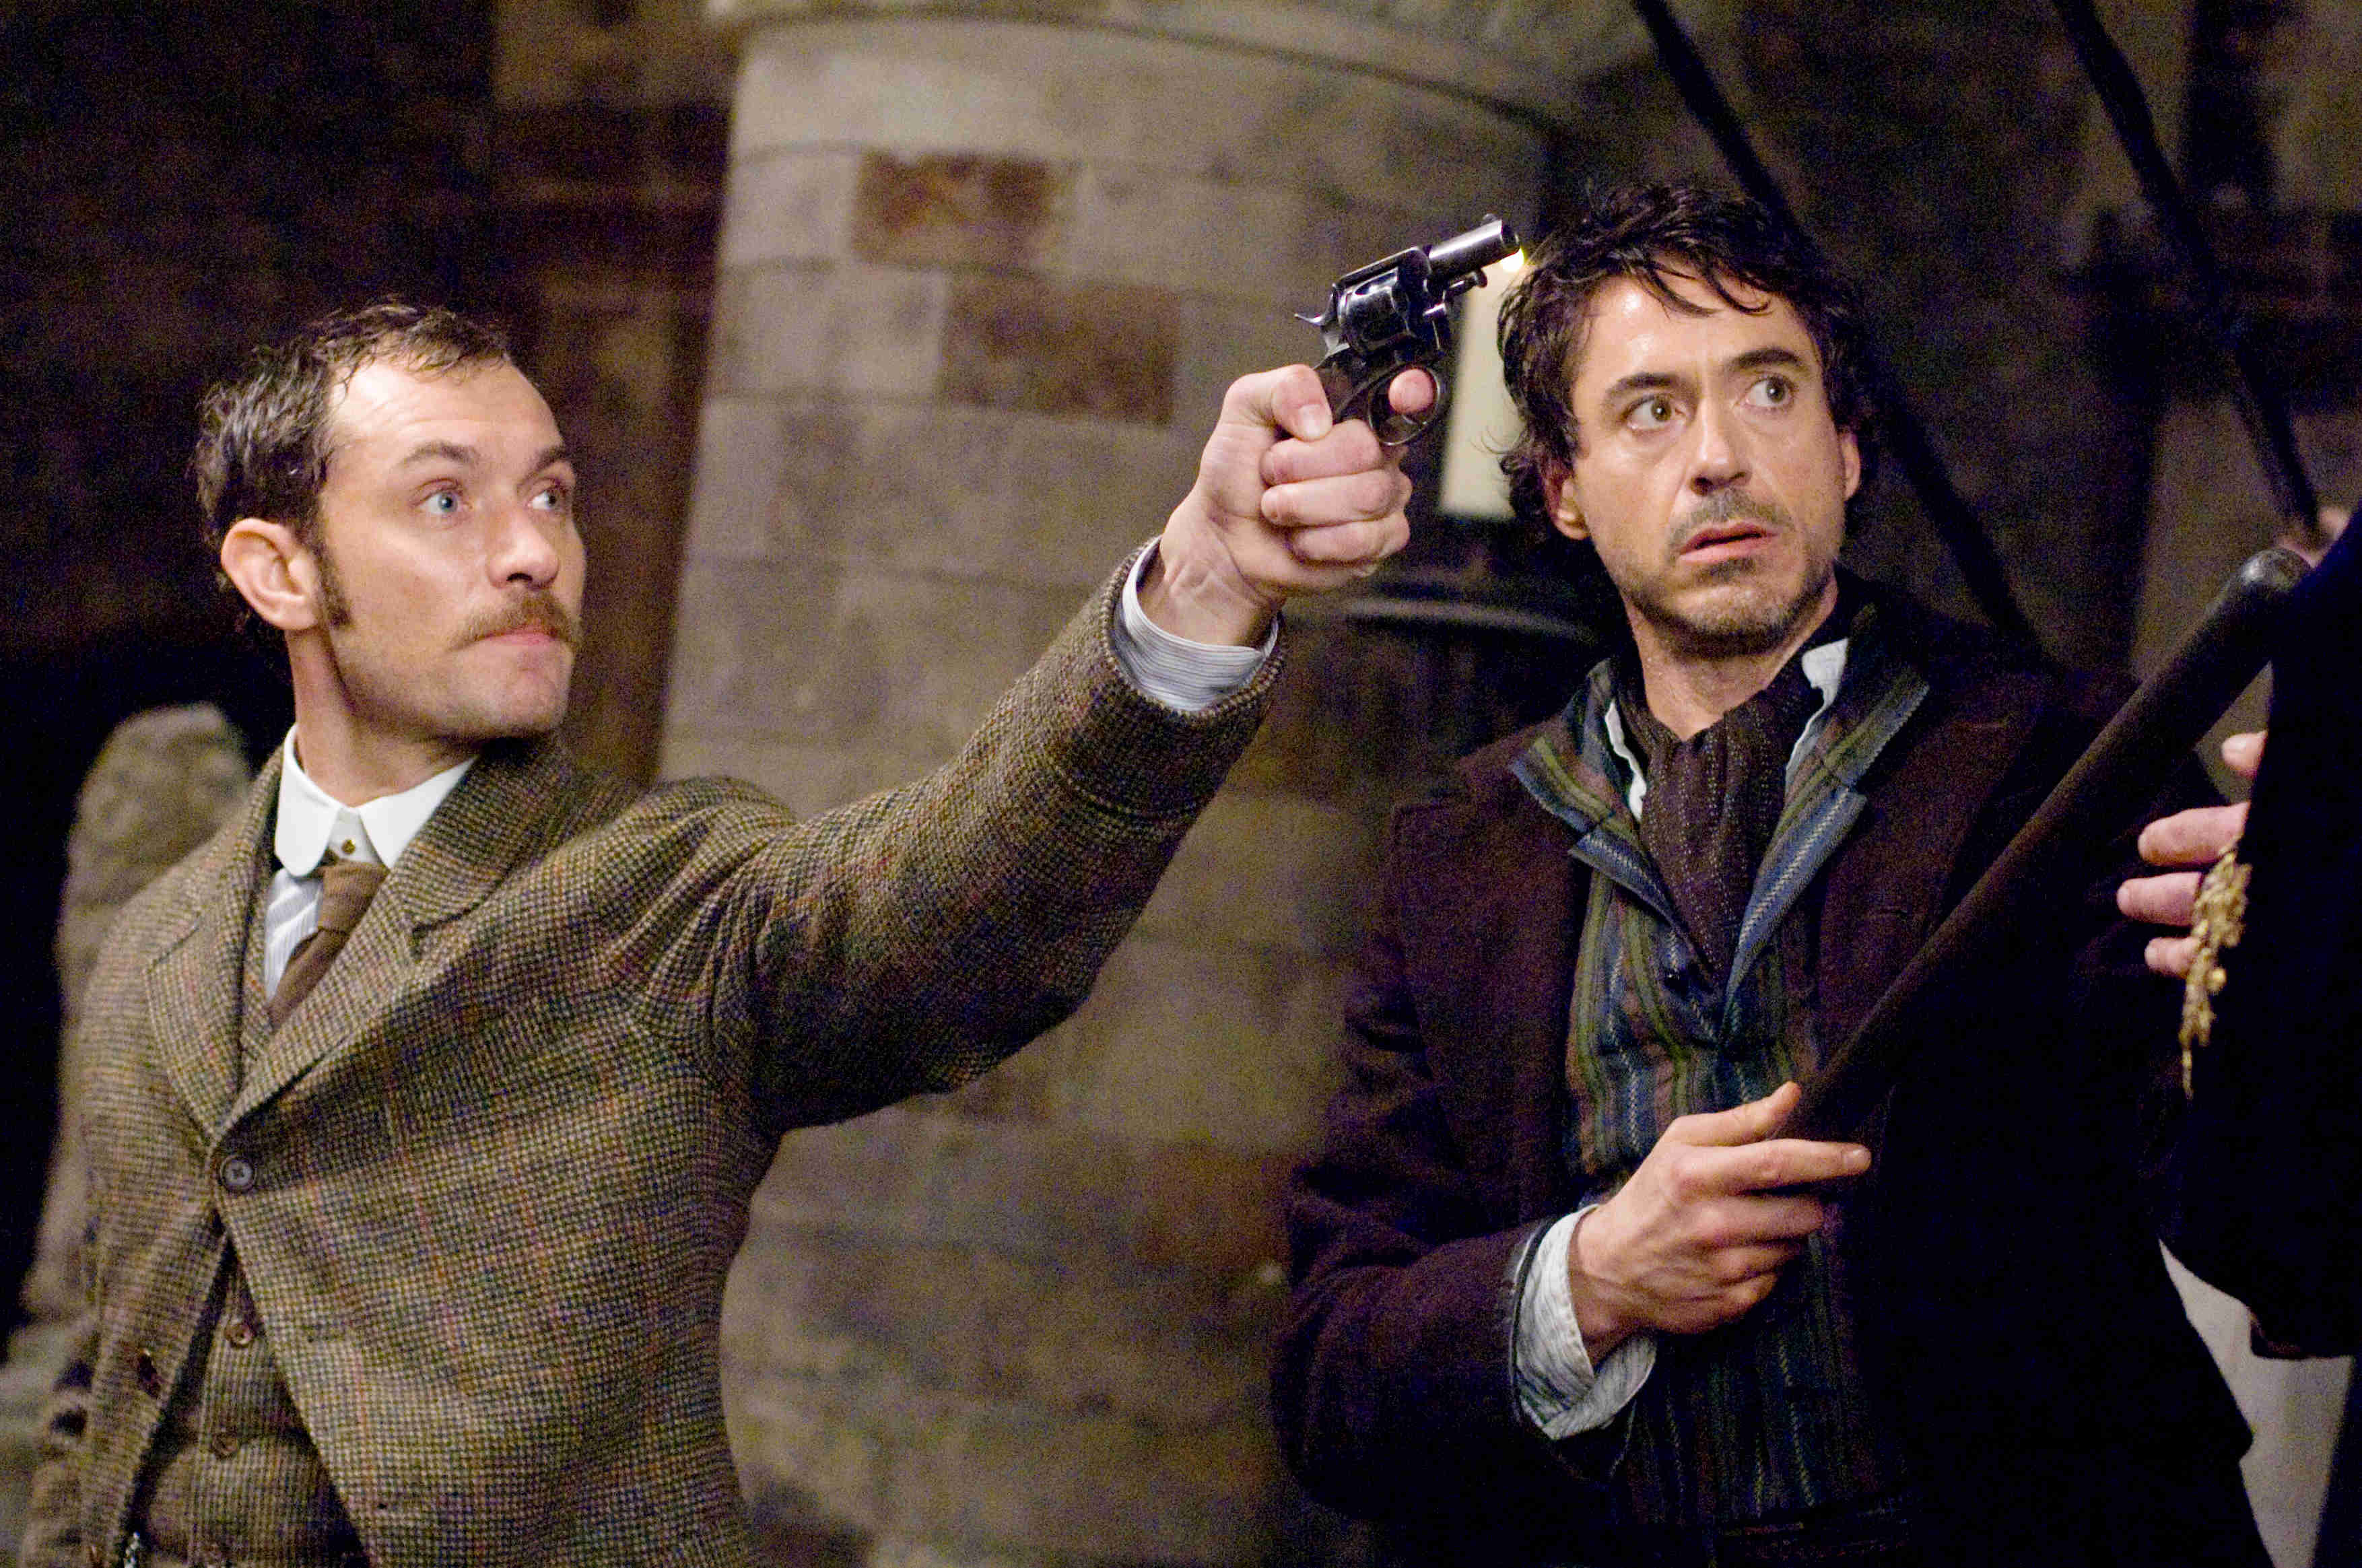 Sherlock Holmes 3' Has Been Pushed Back to 2021 | Collider